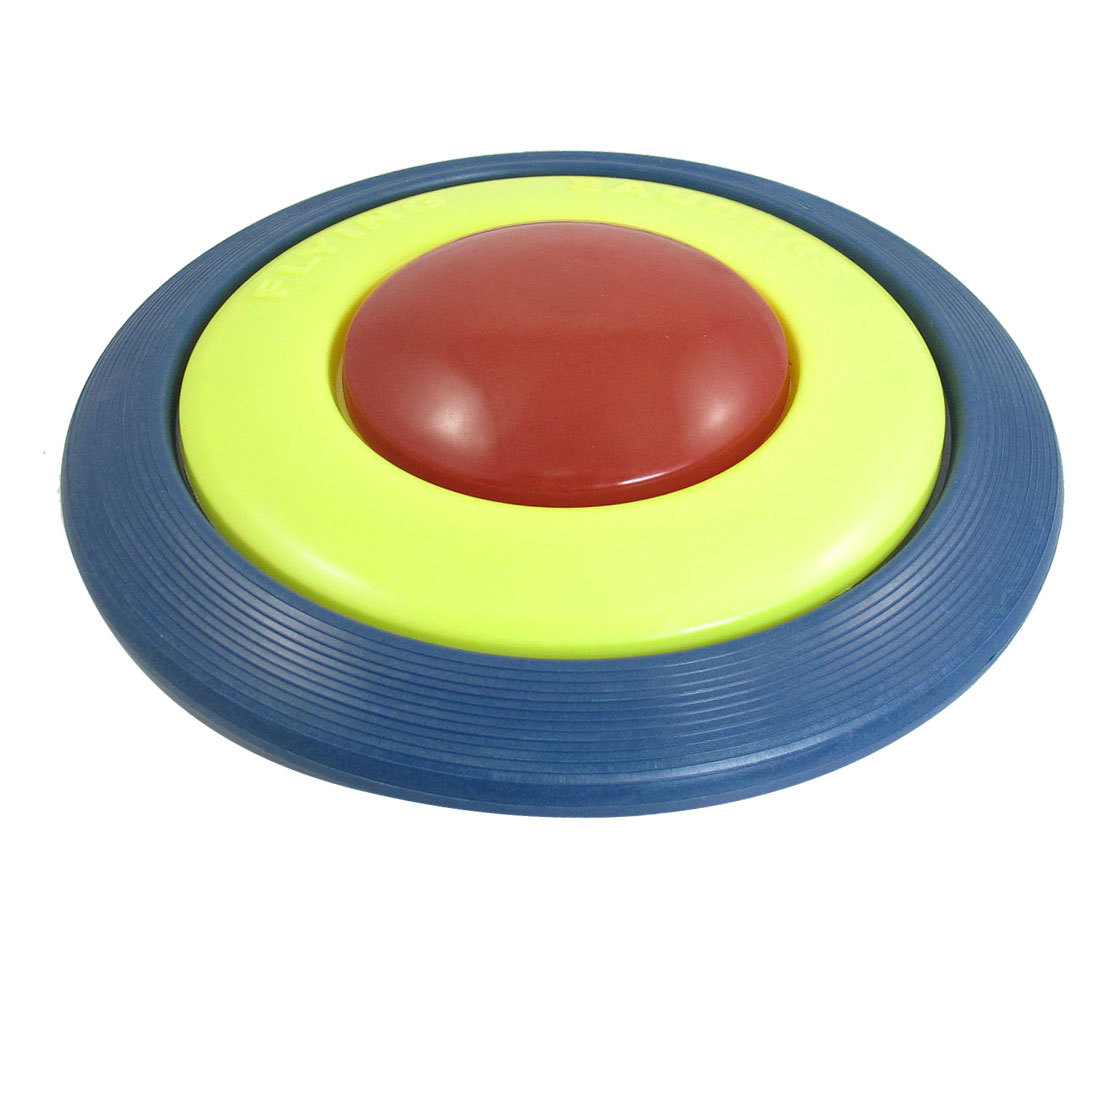 "Child Kid Plastic 8.7"" Dia Flying Disc Frisbee Toy Dark Blue Yellow Red"